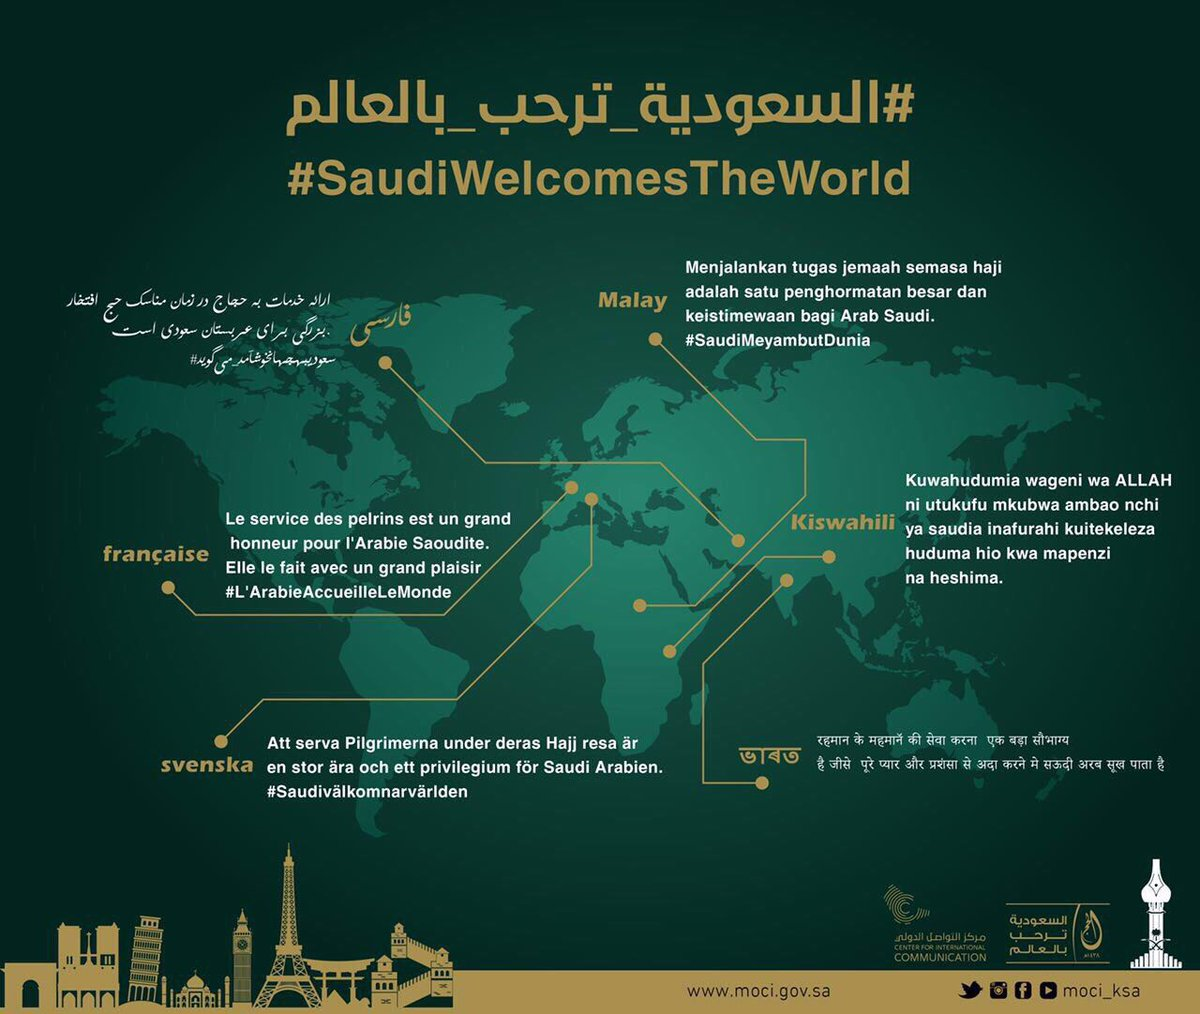 Saudi Welcomes The World